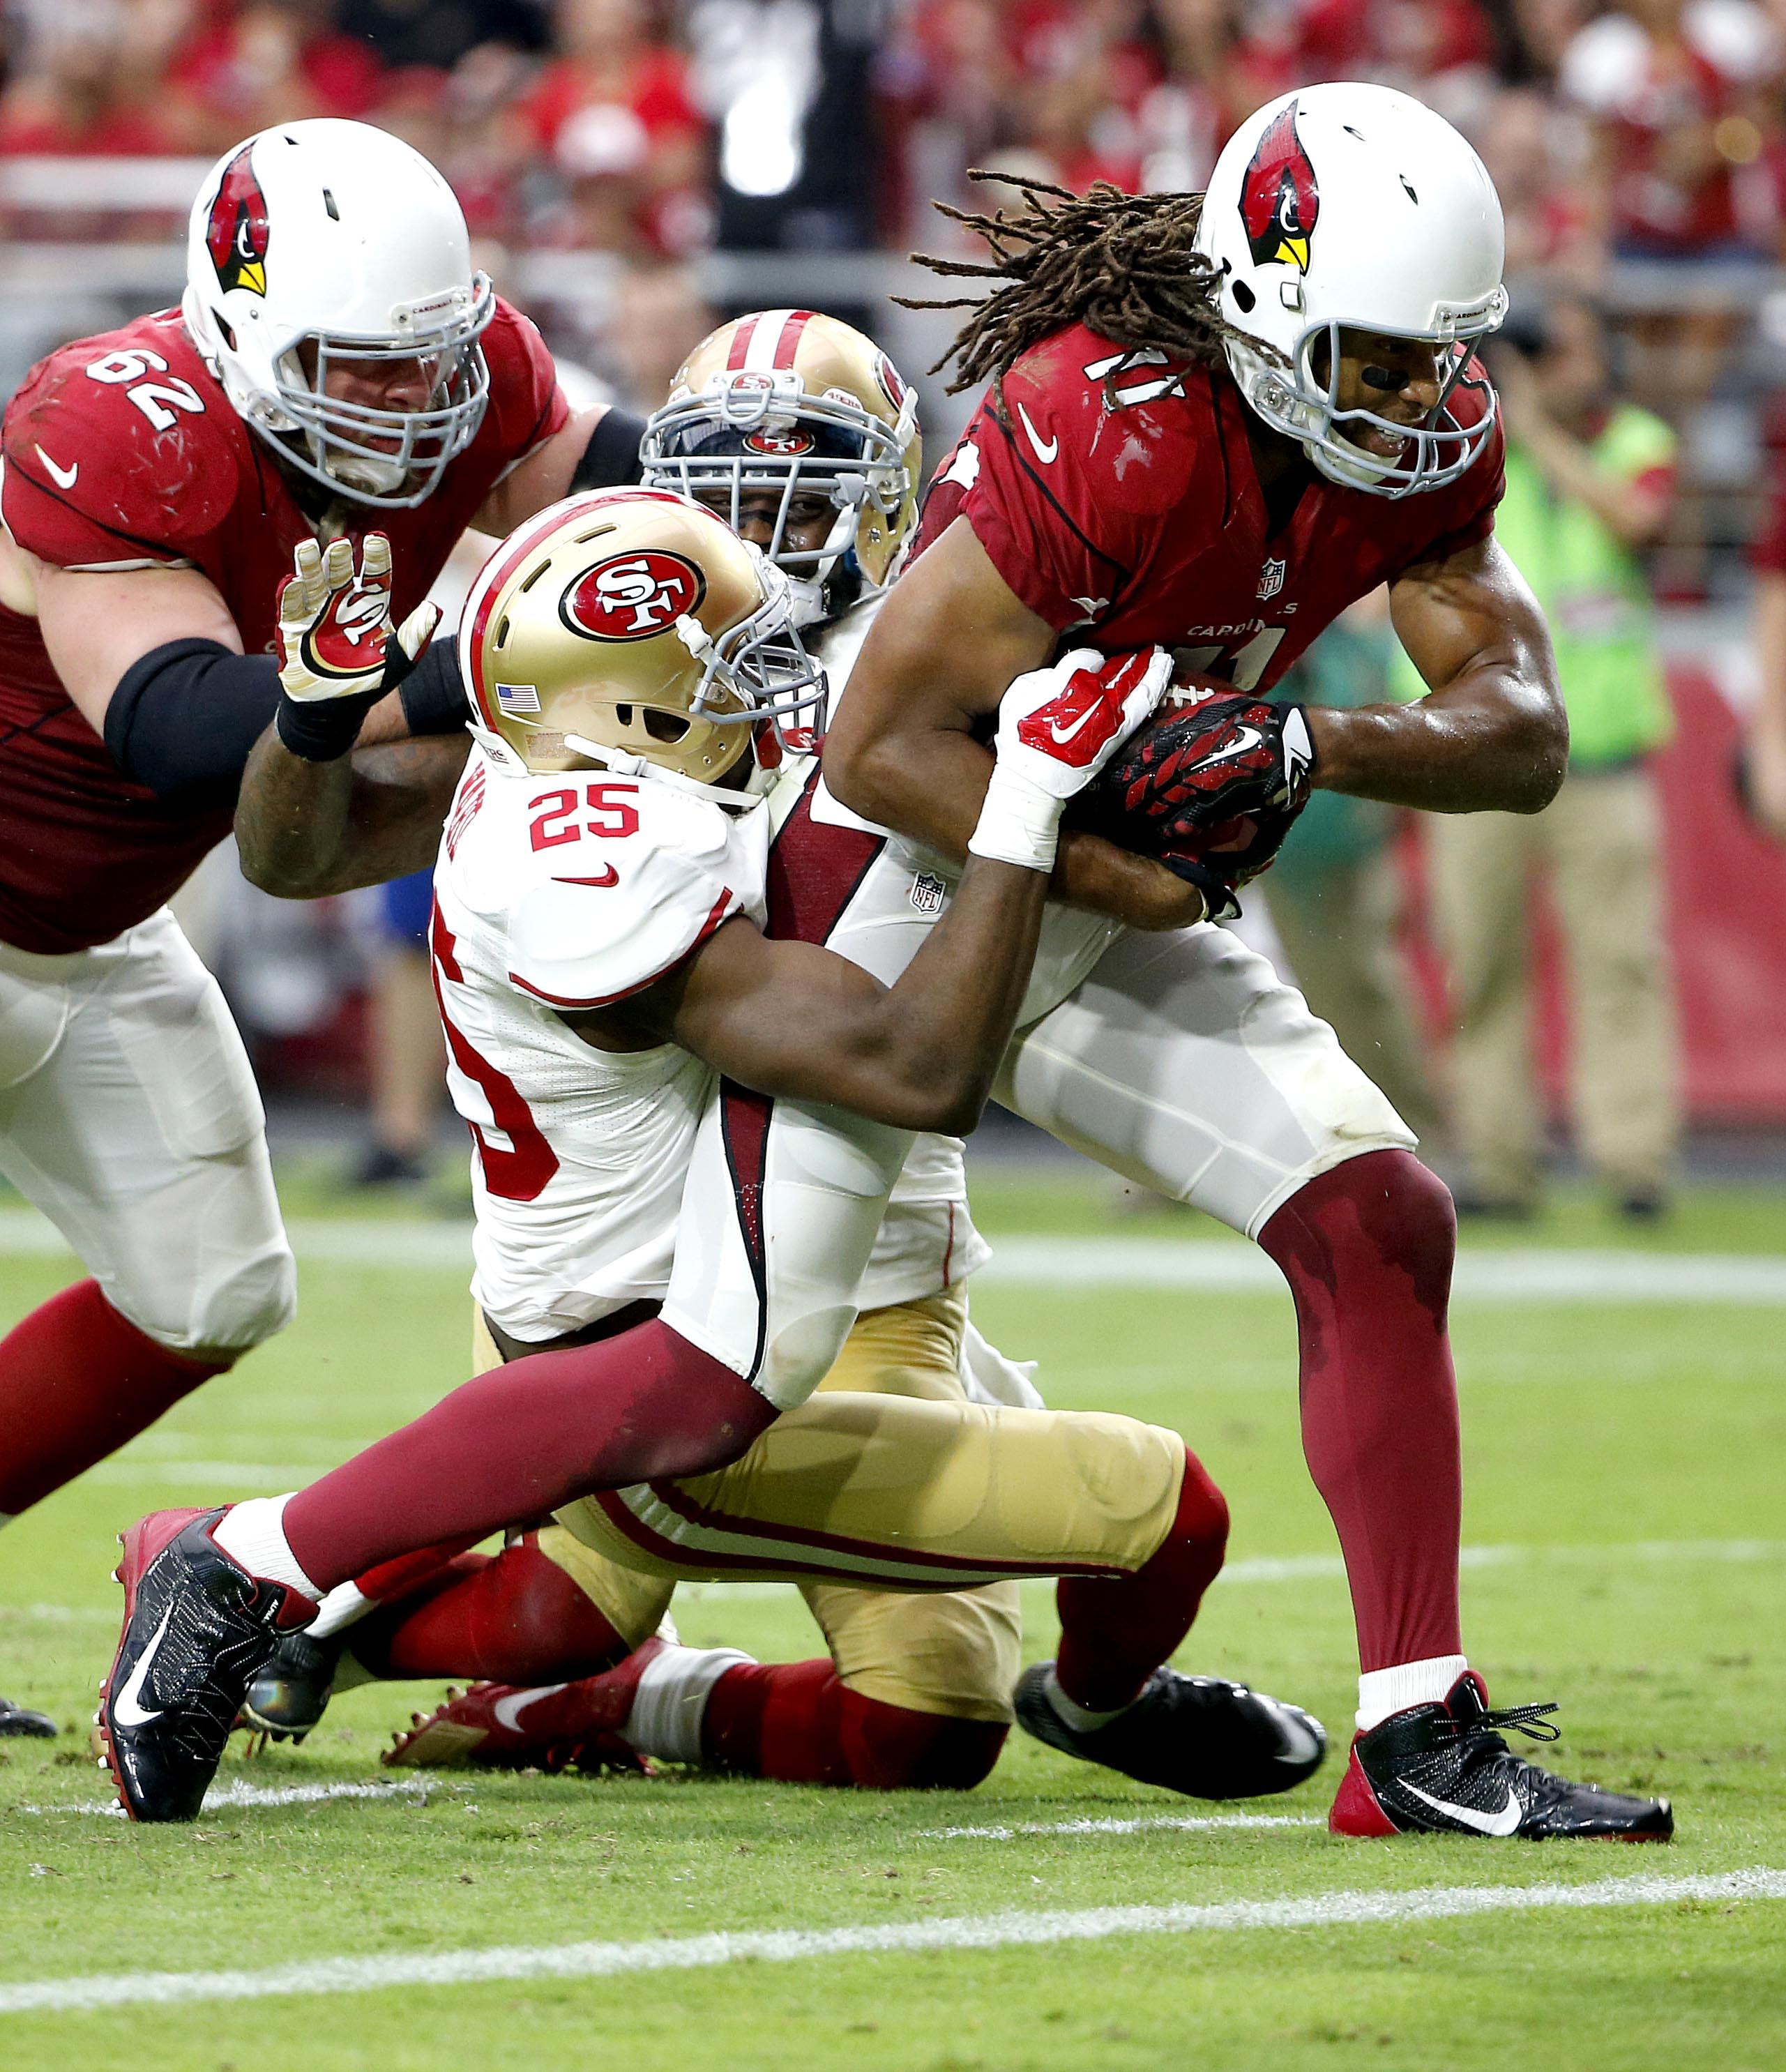 Arizona Cardinals wide receiver Larry Fitzgerald (11) scores a touchdown as San Francisco 49ers strong safety Jimmie Ward (25) defends during the second half of an NFL football game, Sunday, Sept. 27, 2015, in Glendale, Ariz.  (AP Photo/Ross D. Franklin)